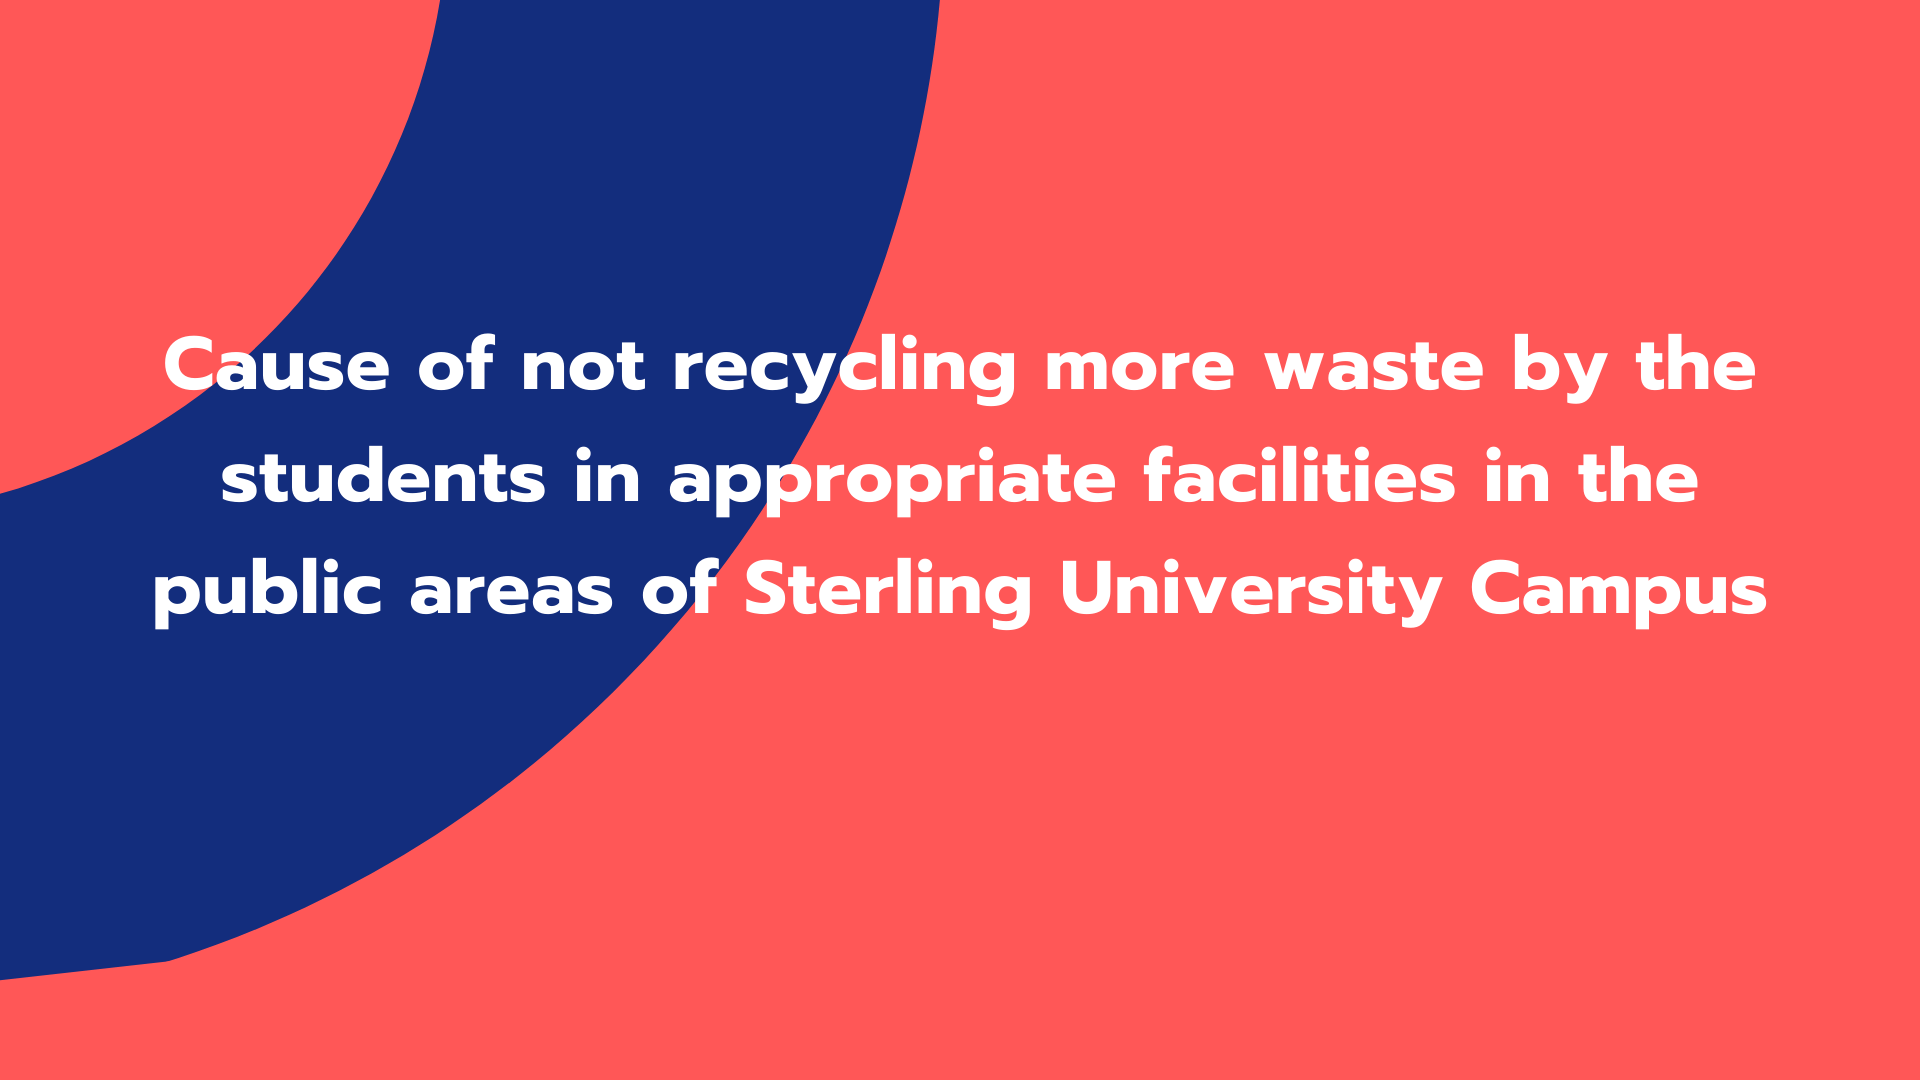 Cause of not recycling more waste by the students in appropriate facilities in the public areas of Sterling University Campus